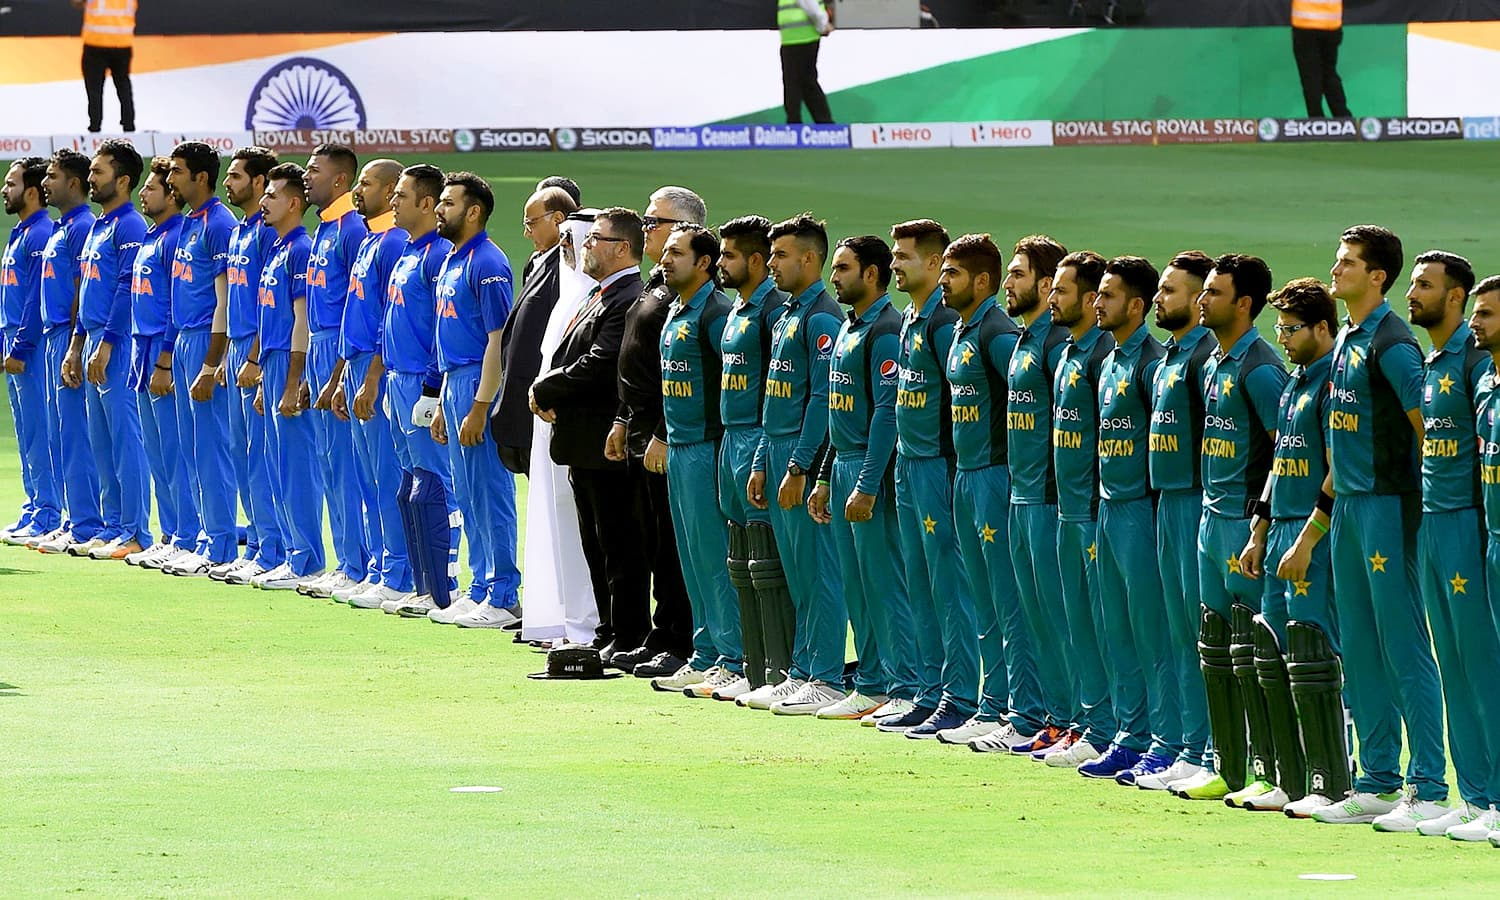 Indian and Pakistani players line up for the national anthem just before the start of the ODI Asia Cup cricket match between Pakistan and India at the Dubai International Cricket Stadium. —AFP